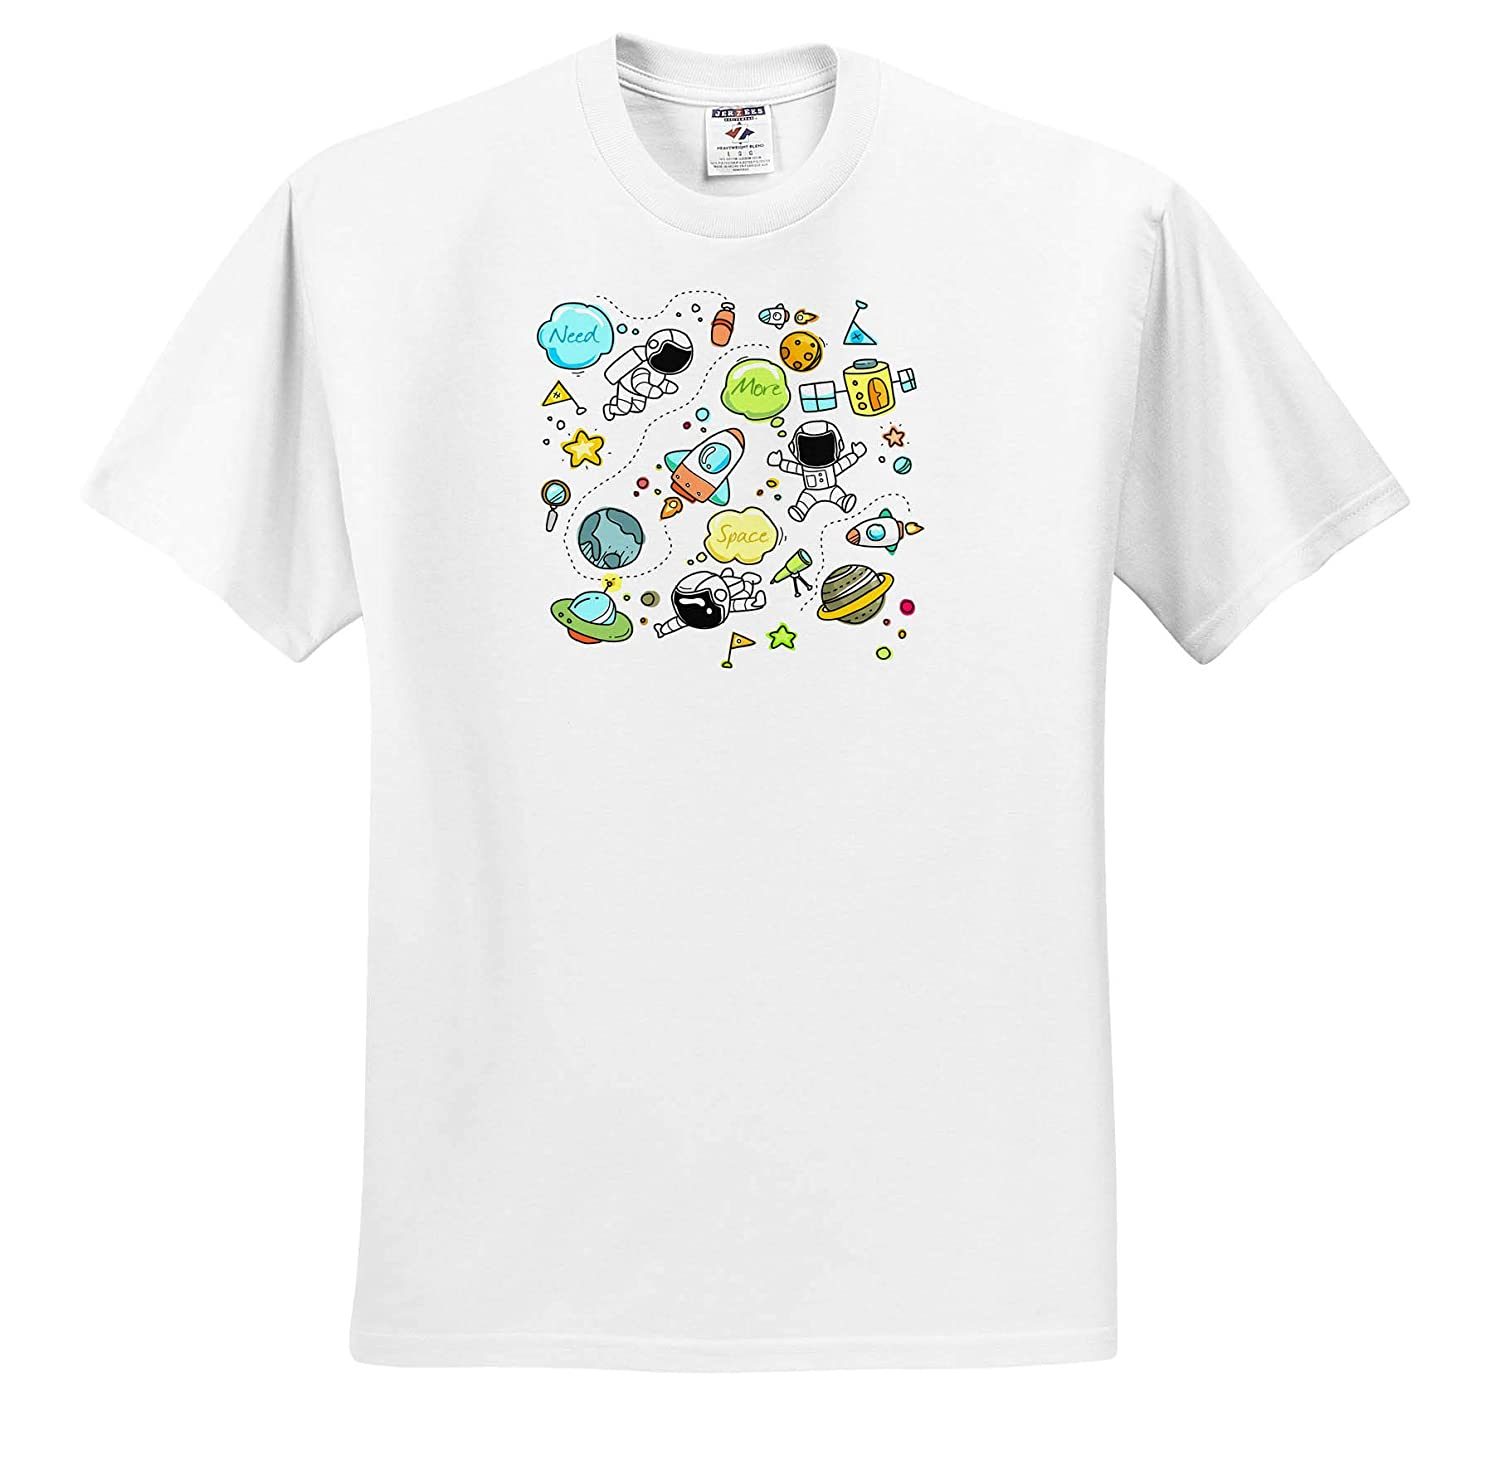 3dRose Alexis Design Adult T-Shirt XL ts/_319160 Text Need More Space Spacecrafts Pattern Space Astronauts Planets